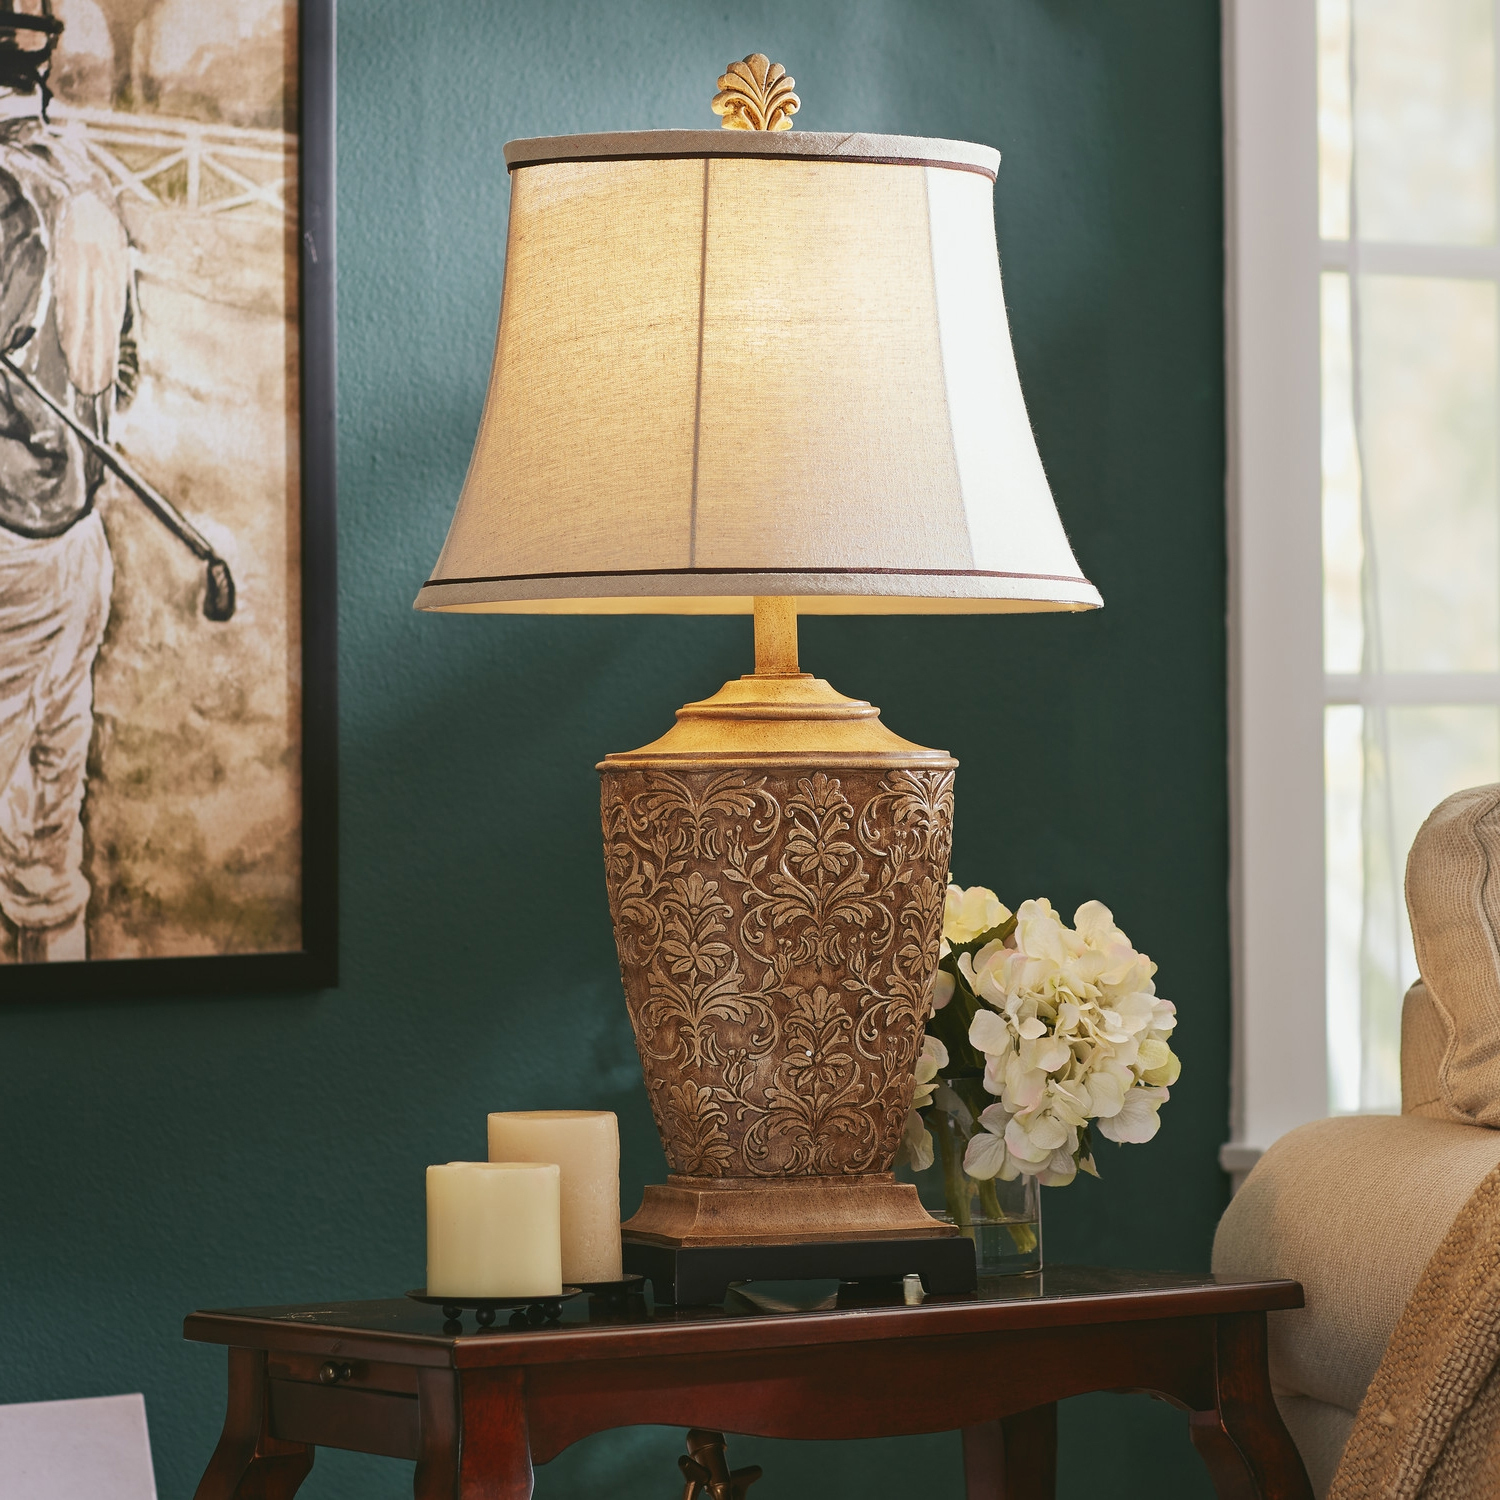 Living Room With Wooden End Table And Tiffany Lamp: Living Room Table Lamps Decor Ideas For Small Living Room